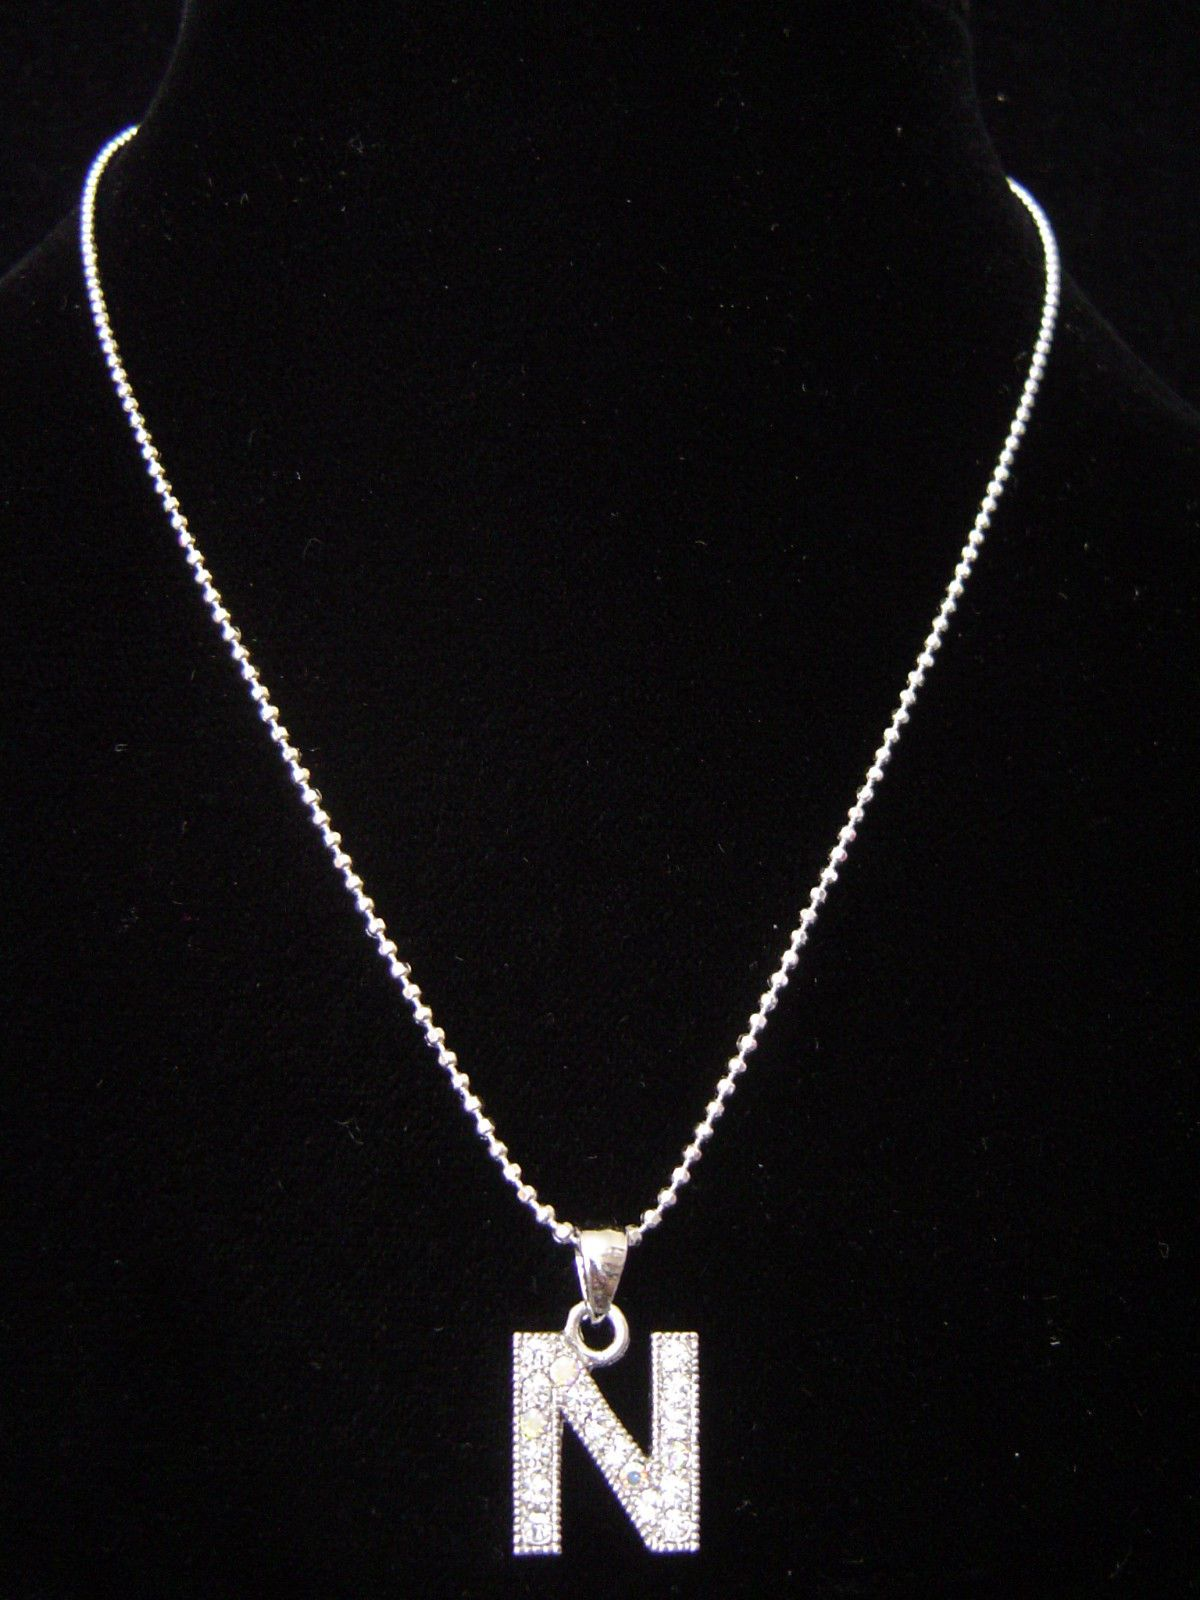 N Letter Initial Alphabet Pendant Charm Necklace Silver Tone Crystal 5 Colors Charm Necklace Silver Necklace Silver Rings Online